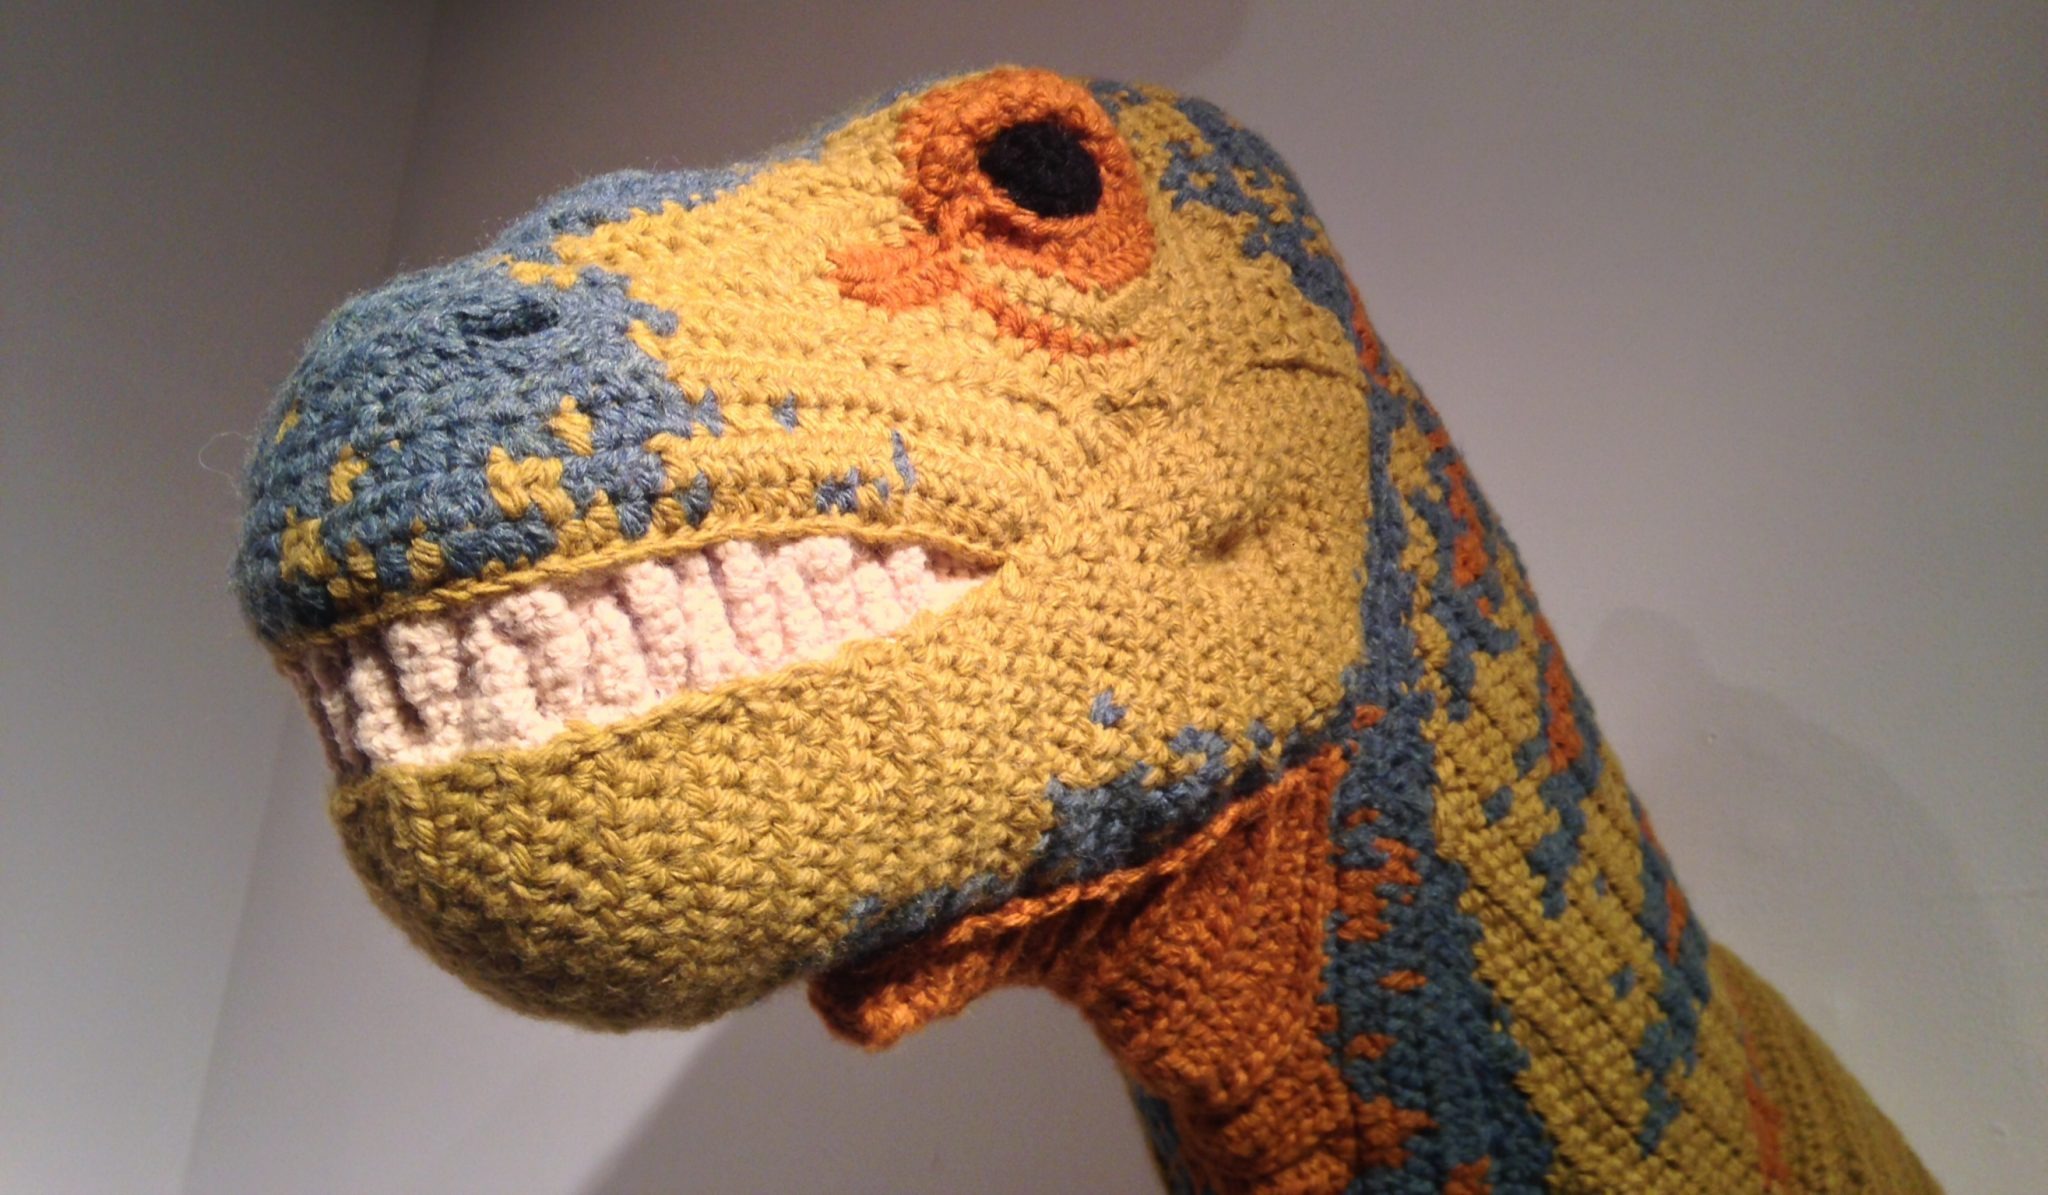 Crochet Crochet Crochet : ... of some of the work from prolific male crochet artist Nathan Vincent